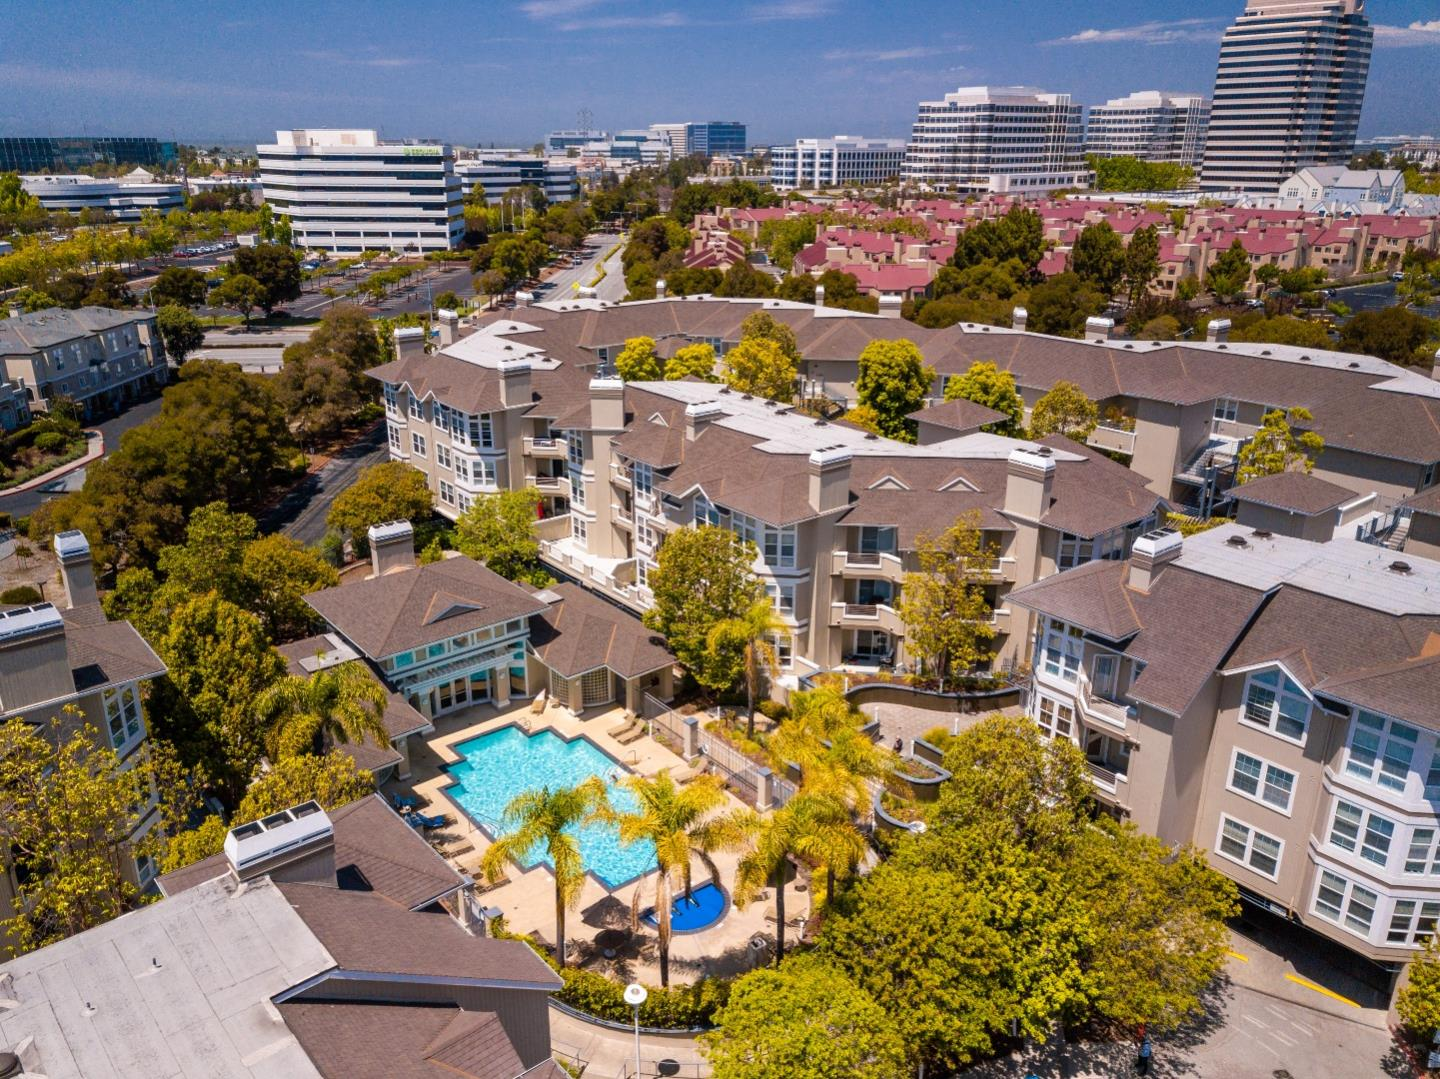 Welcome to Meridian Bay Lane one of the more sought after communities in the Peninsula. Open Kitchen with granite counter tops, newly refaced kitchen cabinets and stainless steel appliances. Large dining area with sliding doors leading out to balcony. Vaulted ceilings, wood fireplace, in unit washer/dryer, central AC/Heat. Bathrooms have been tastefully updated. Community Swimming pool, spa, gym, sauna and club house. Steps from shopping and restaurants. Highly rated Foster City School District.